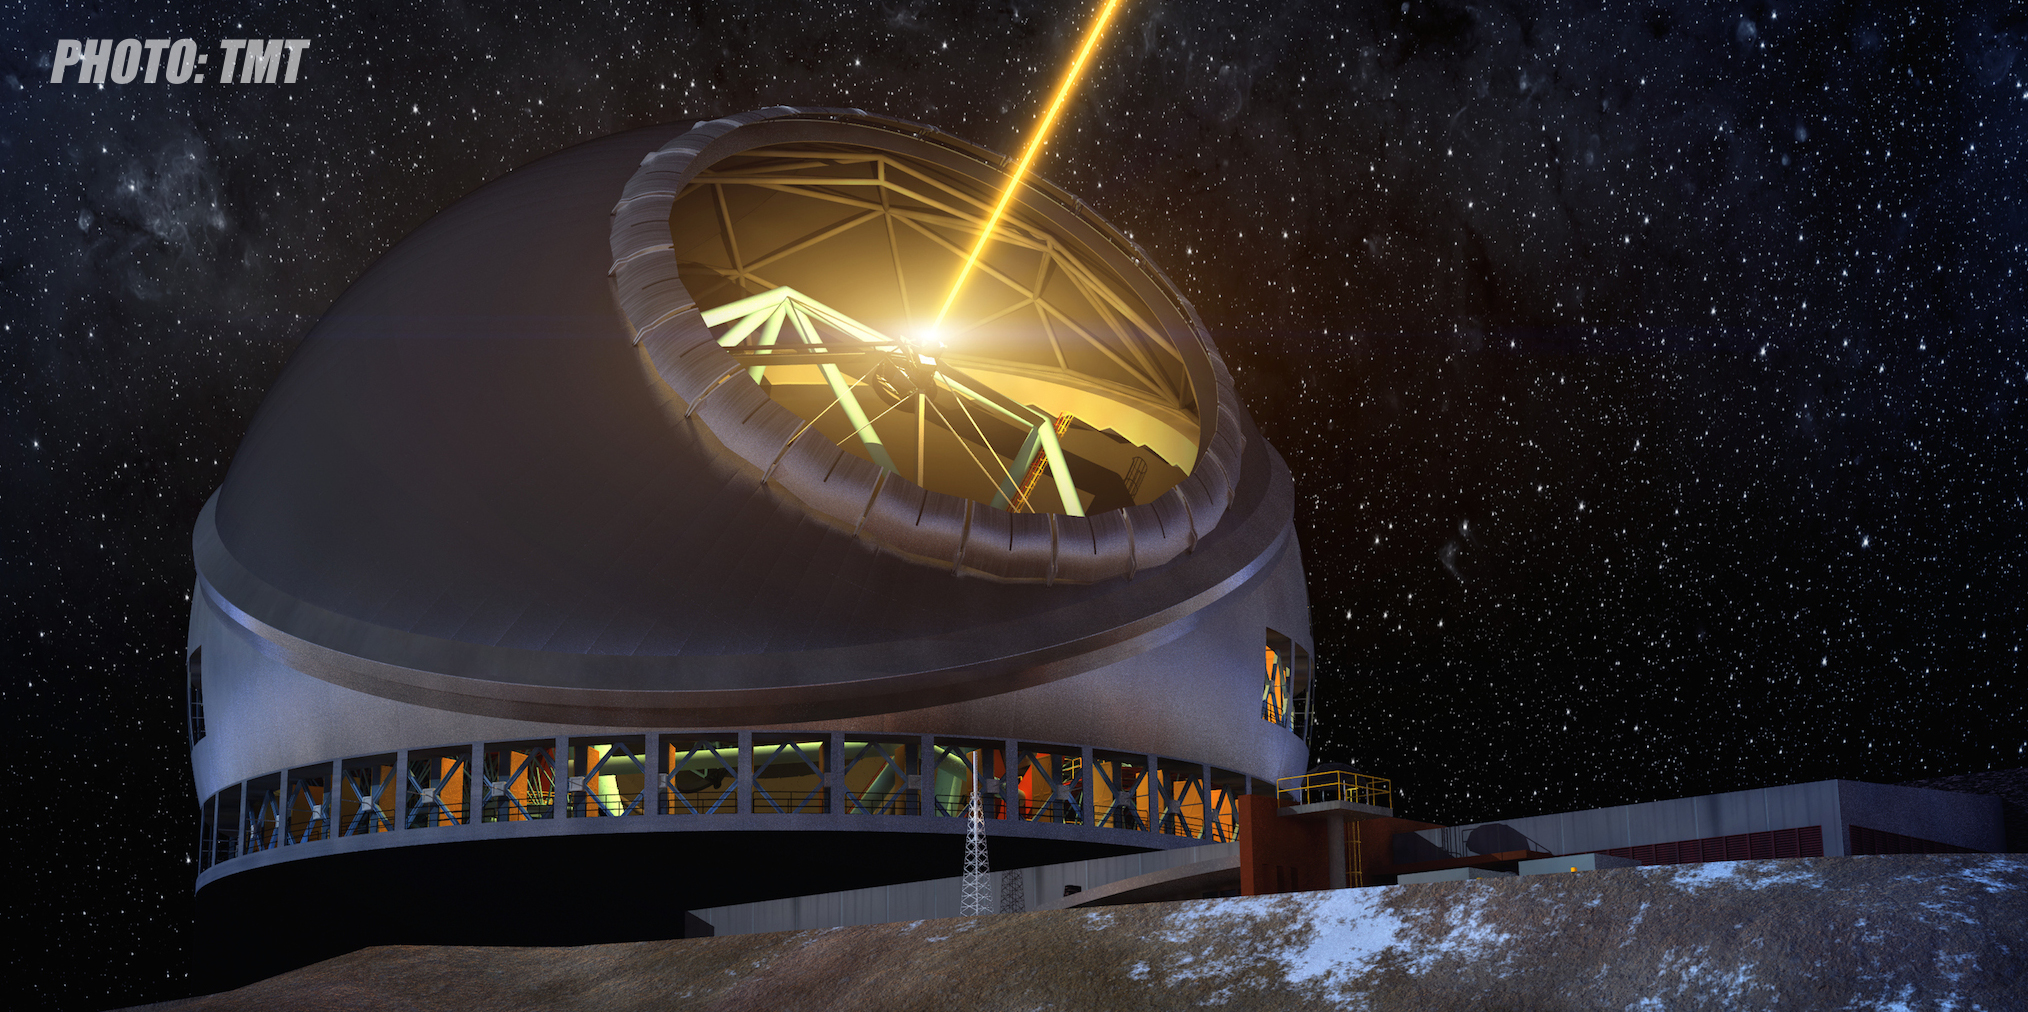 VIDEO: Hawaii County Support Of TMT, Astronomy Questioned